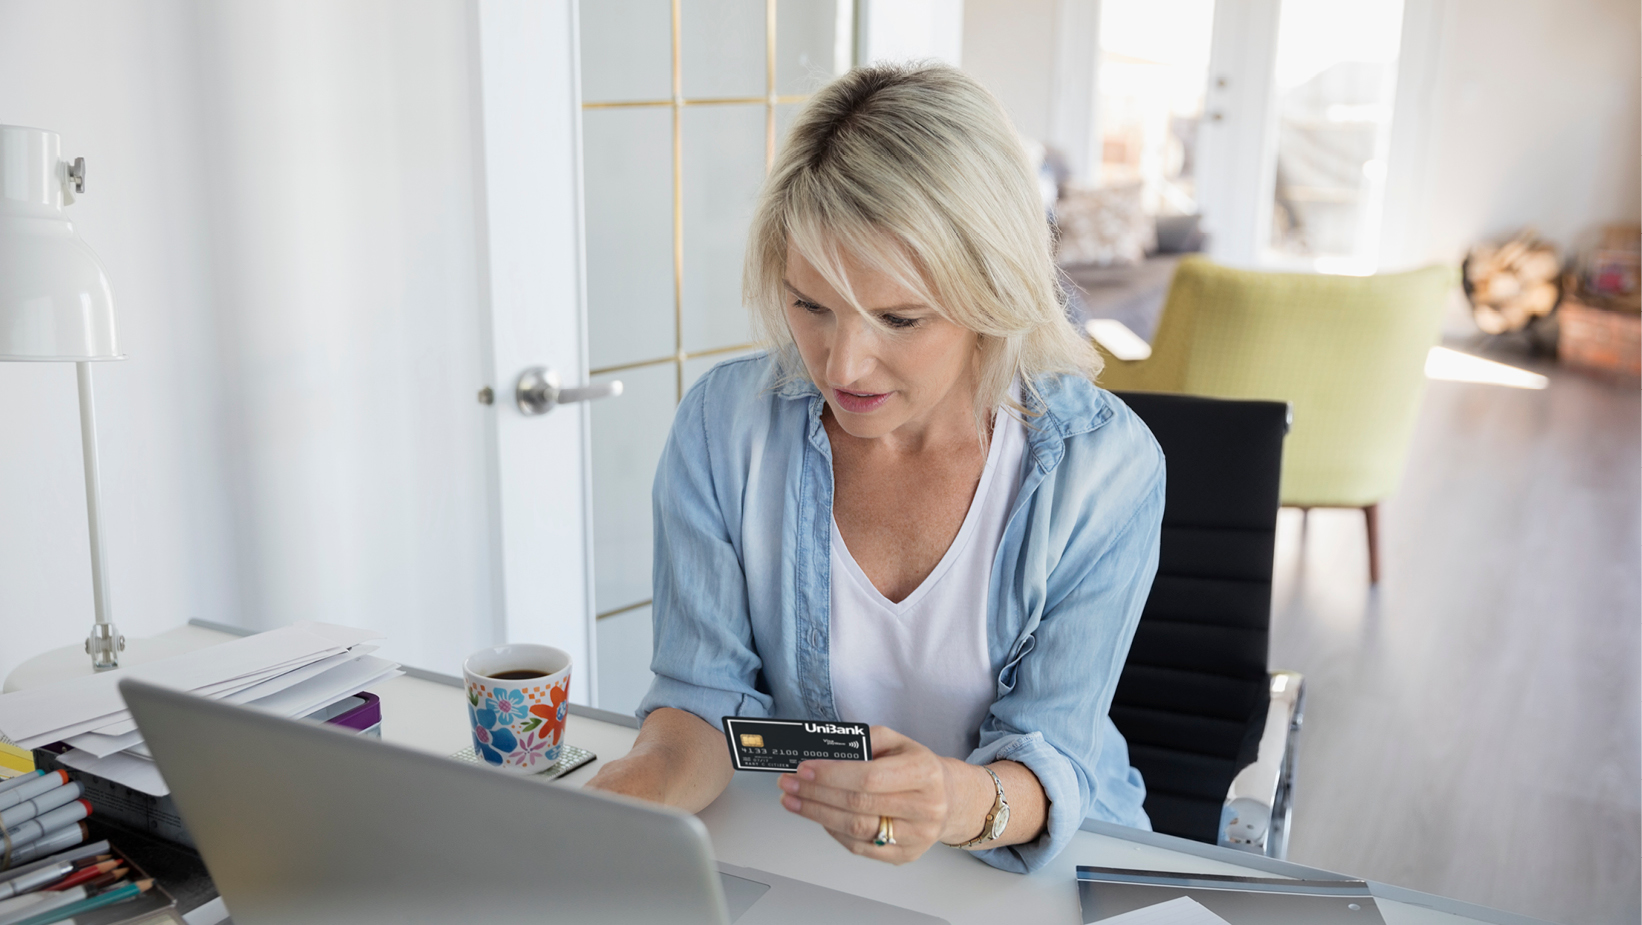 Middle-aged woman at home making a payment online, looking at card in hand and laptop screen